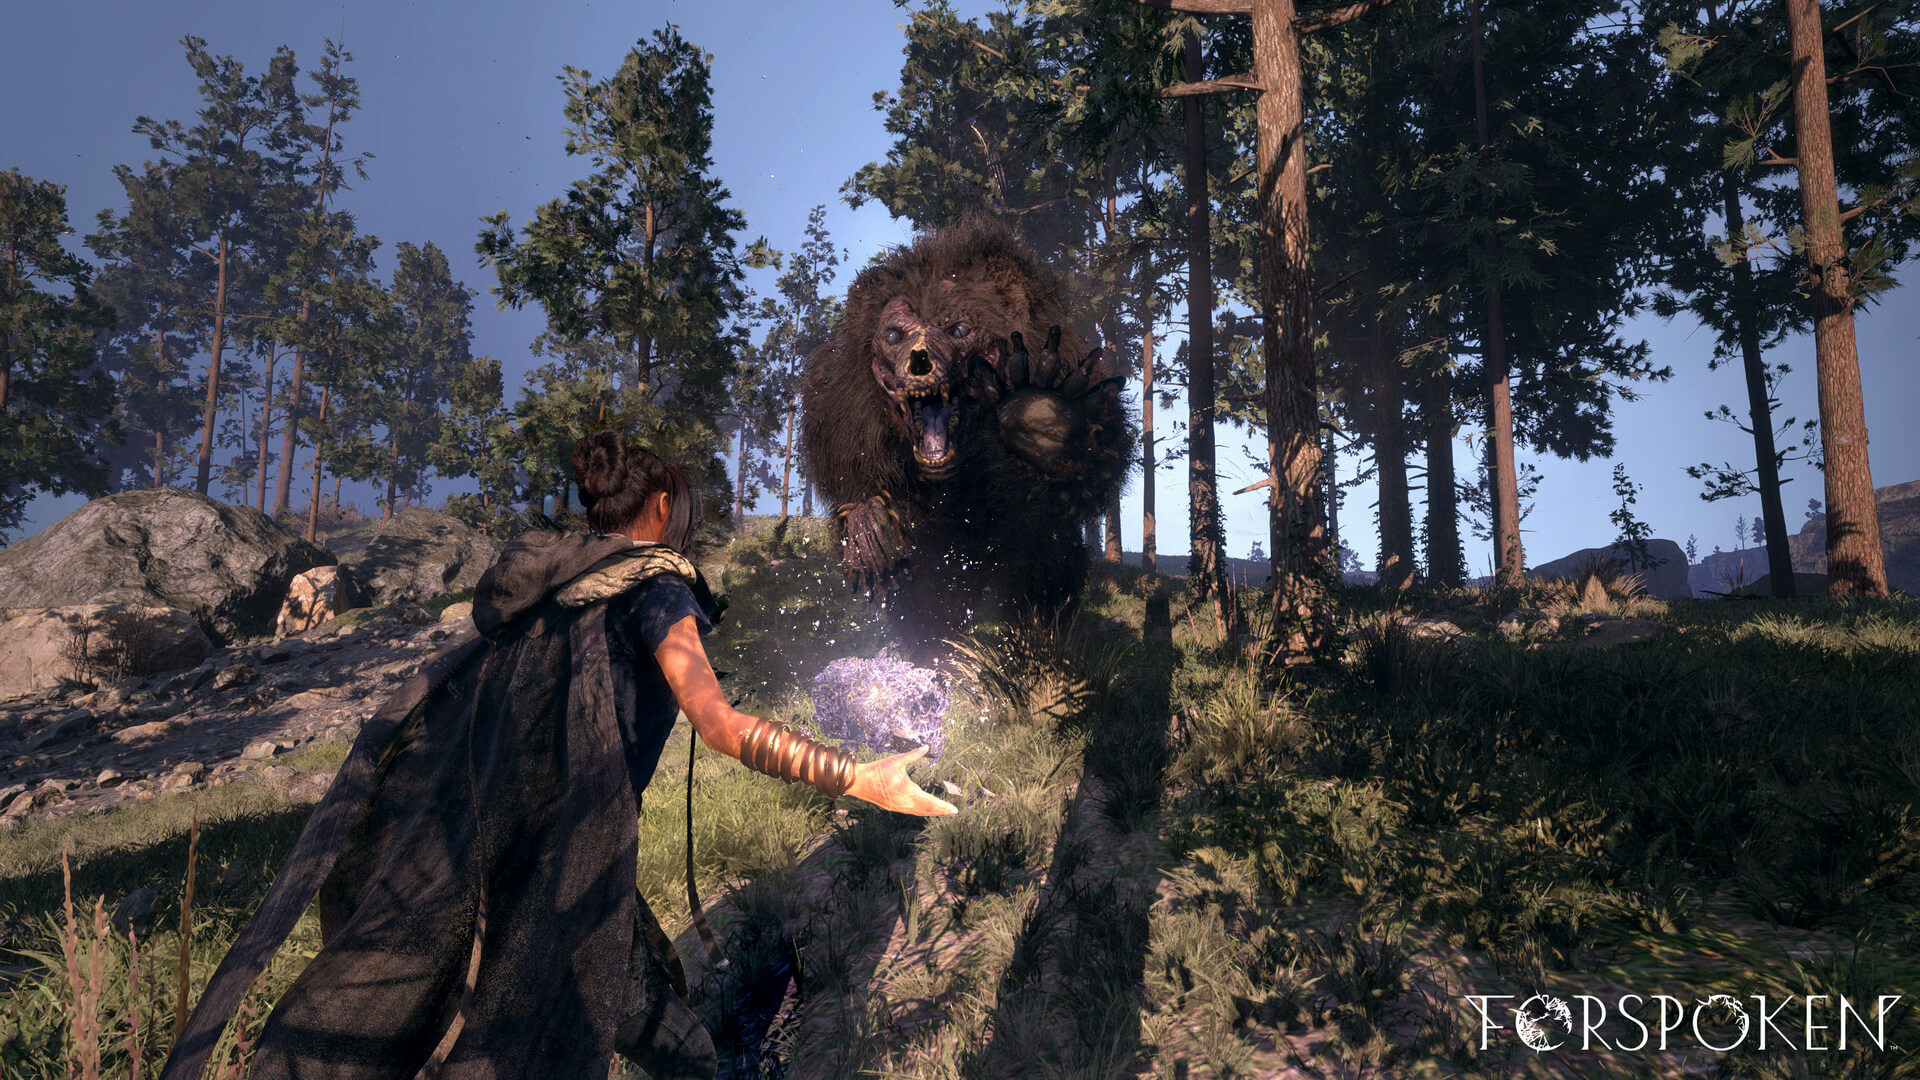 A screenshot from Forspoken, where we are about to be attacked by an enormous, undead bear.